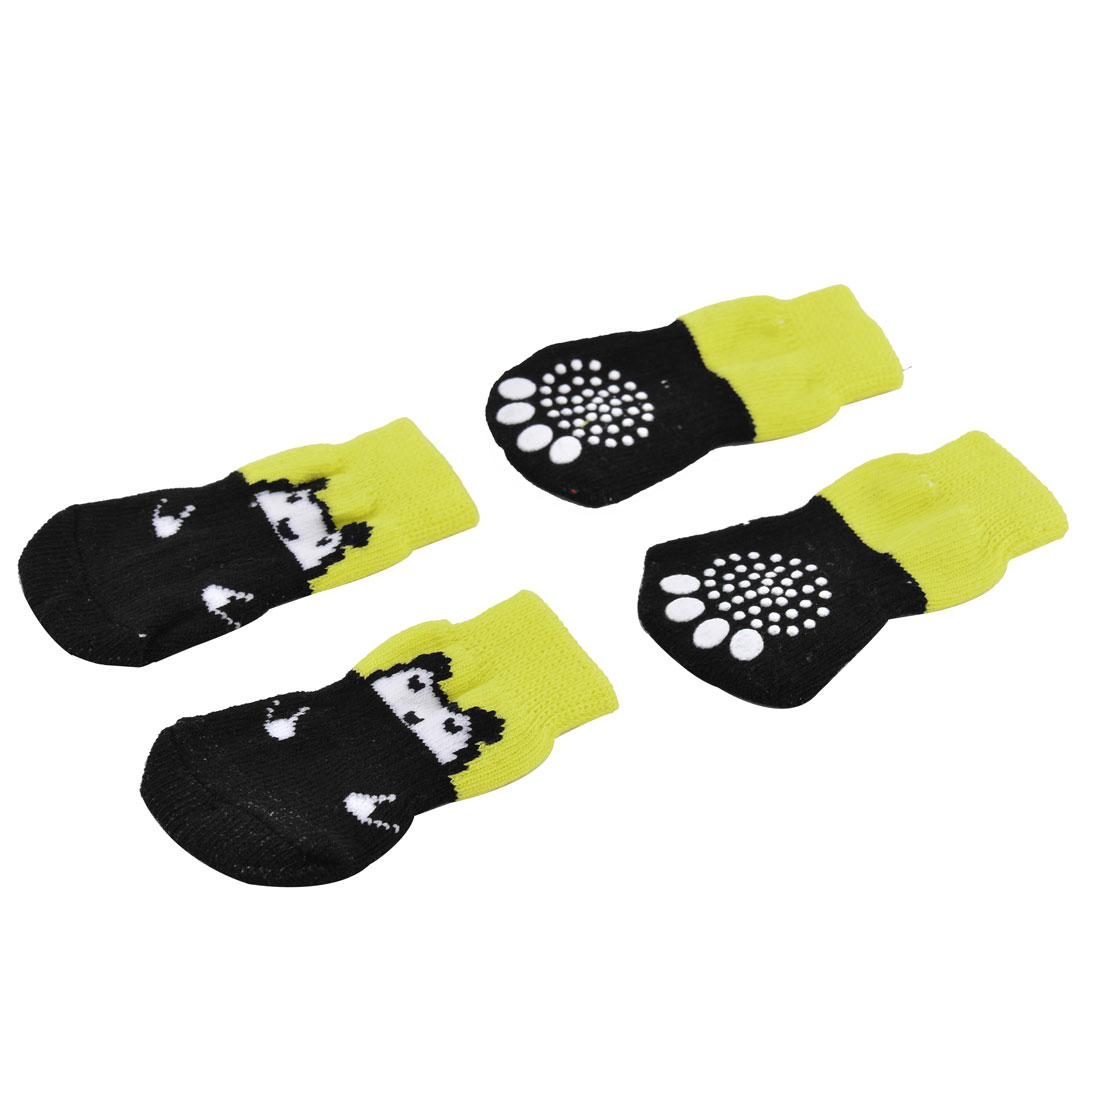 Home Outdoor Pet Puppy Dog Cat Cotton Elastic Breathable Anti-slip Sock Pair